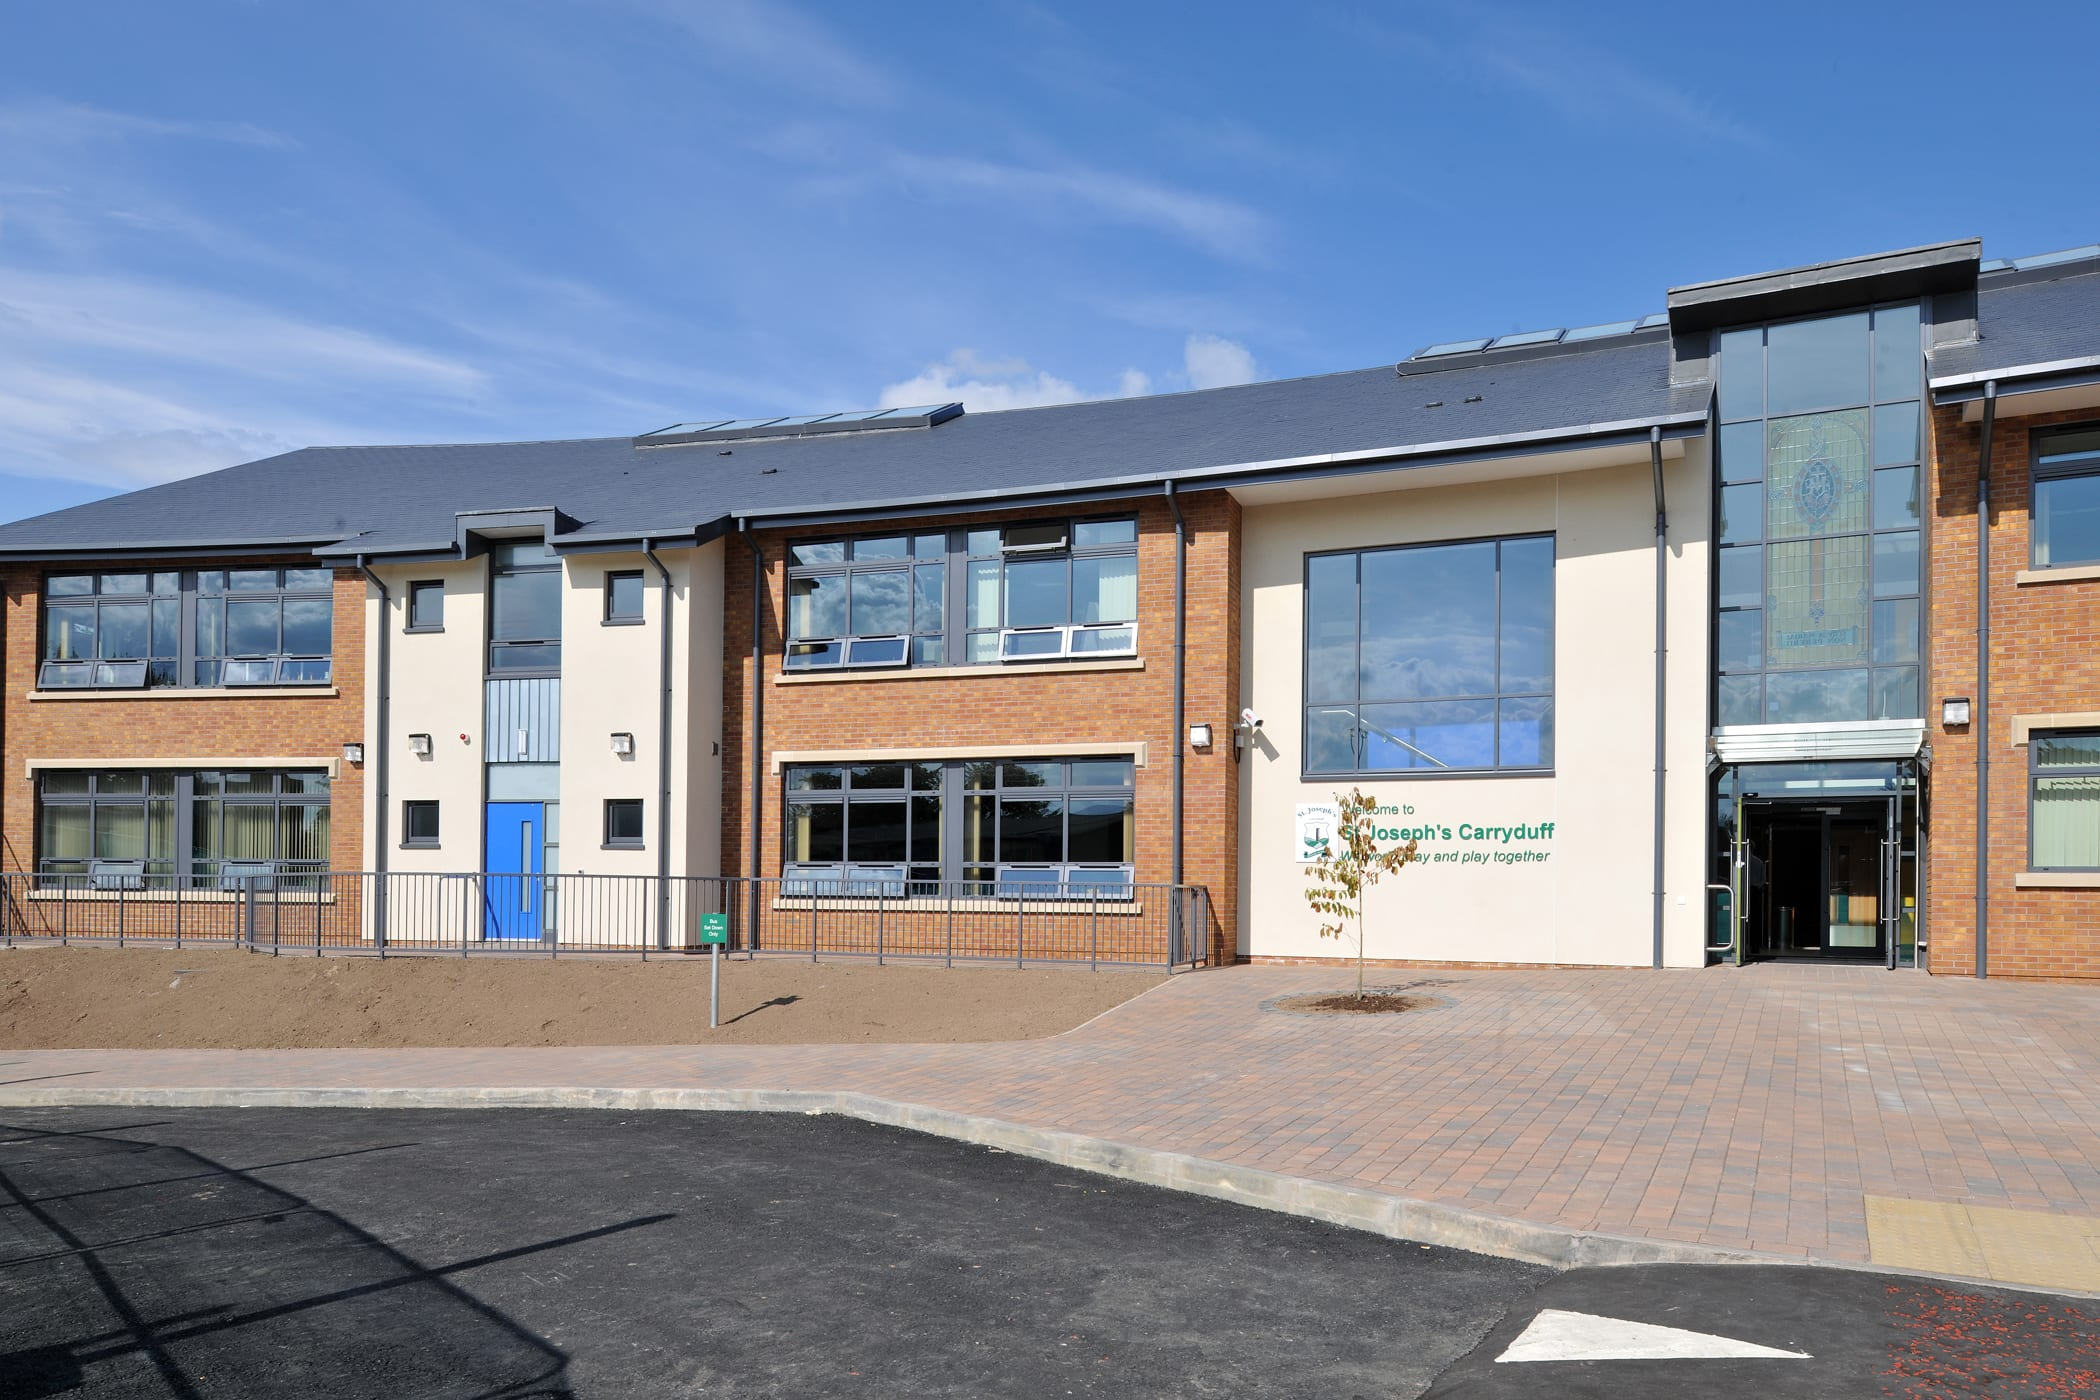 St Josephs Primary School, Carryduff Featured Image